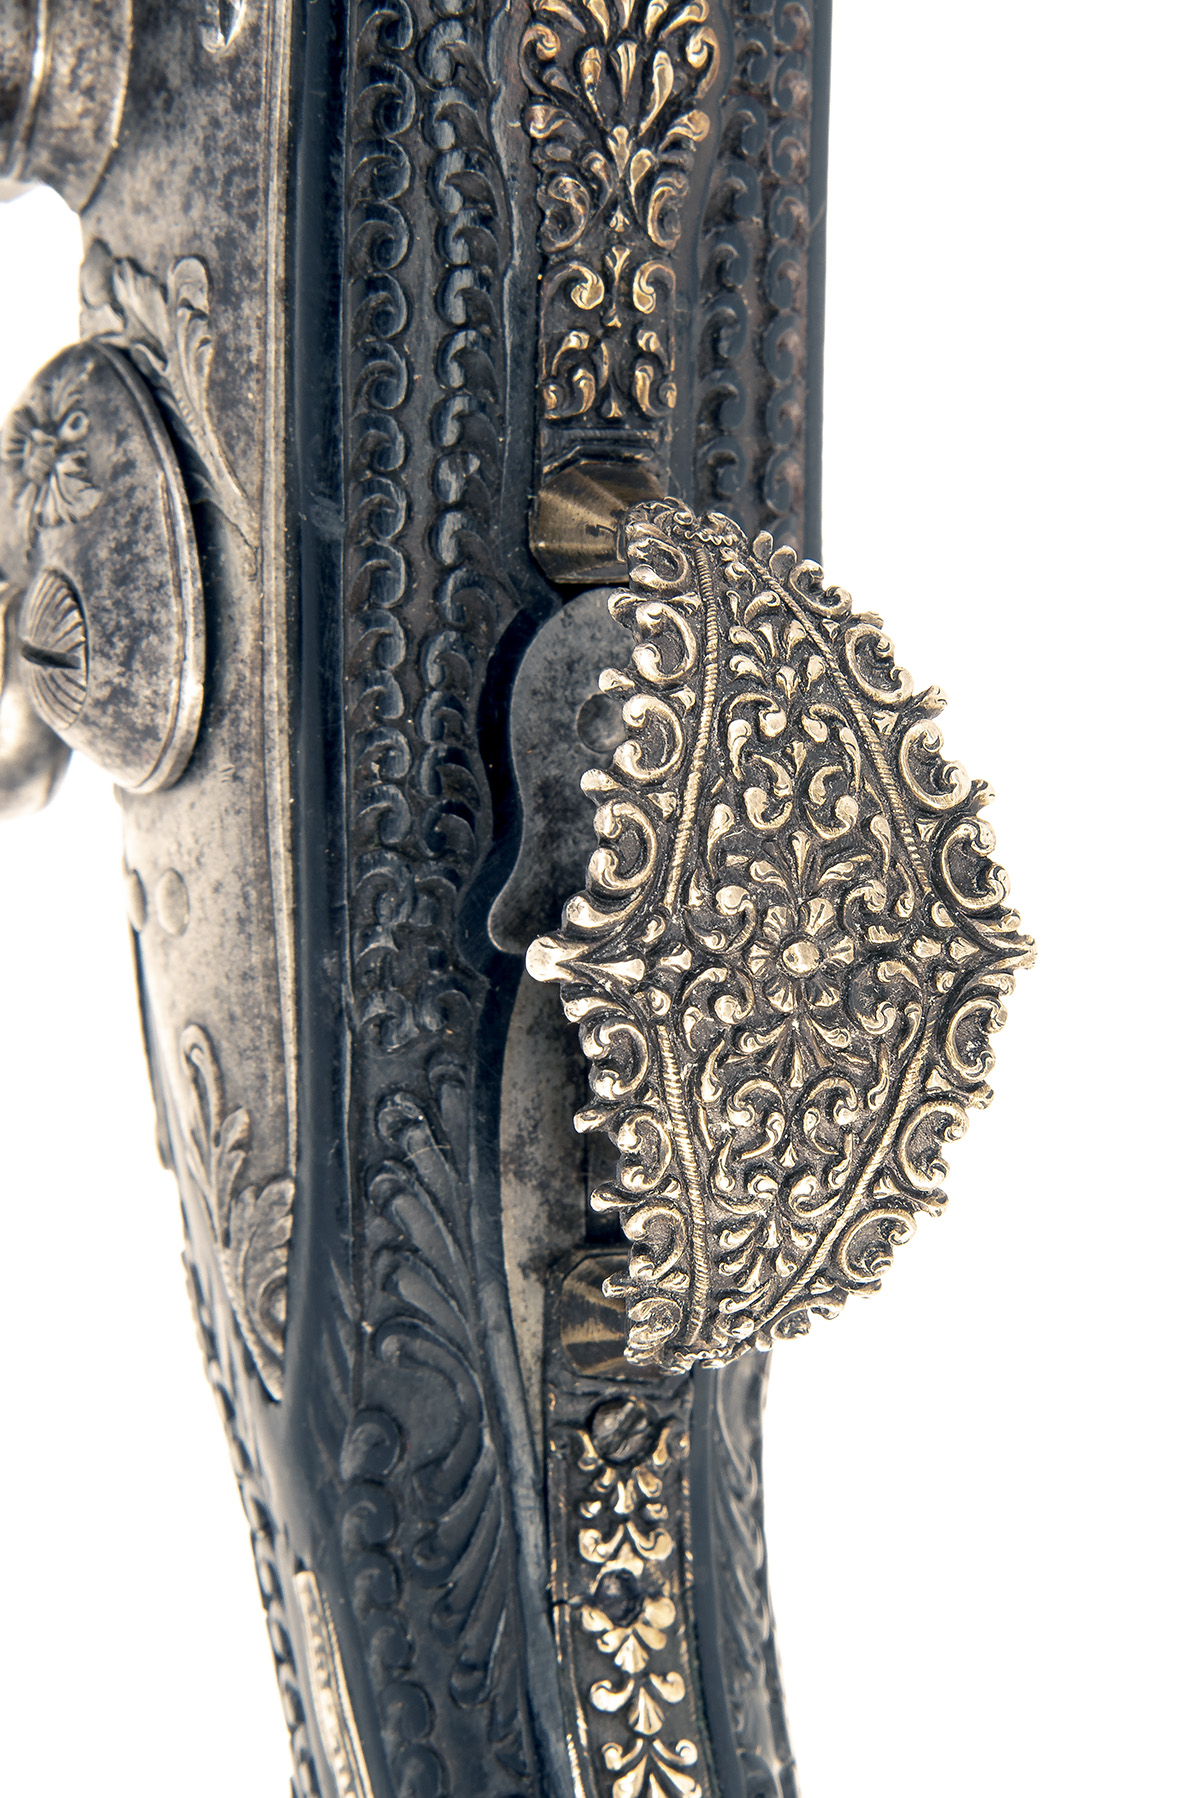 A FINE PAIR OF 22-BORE FLINTLOCK HOLSTER-PISTOL WITH EBONY STOCKS AND NIELLO DECORATION, UNSIGNED, - Image 5 of 10